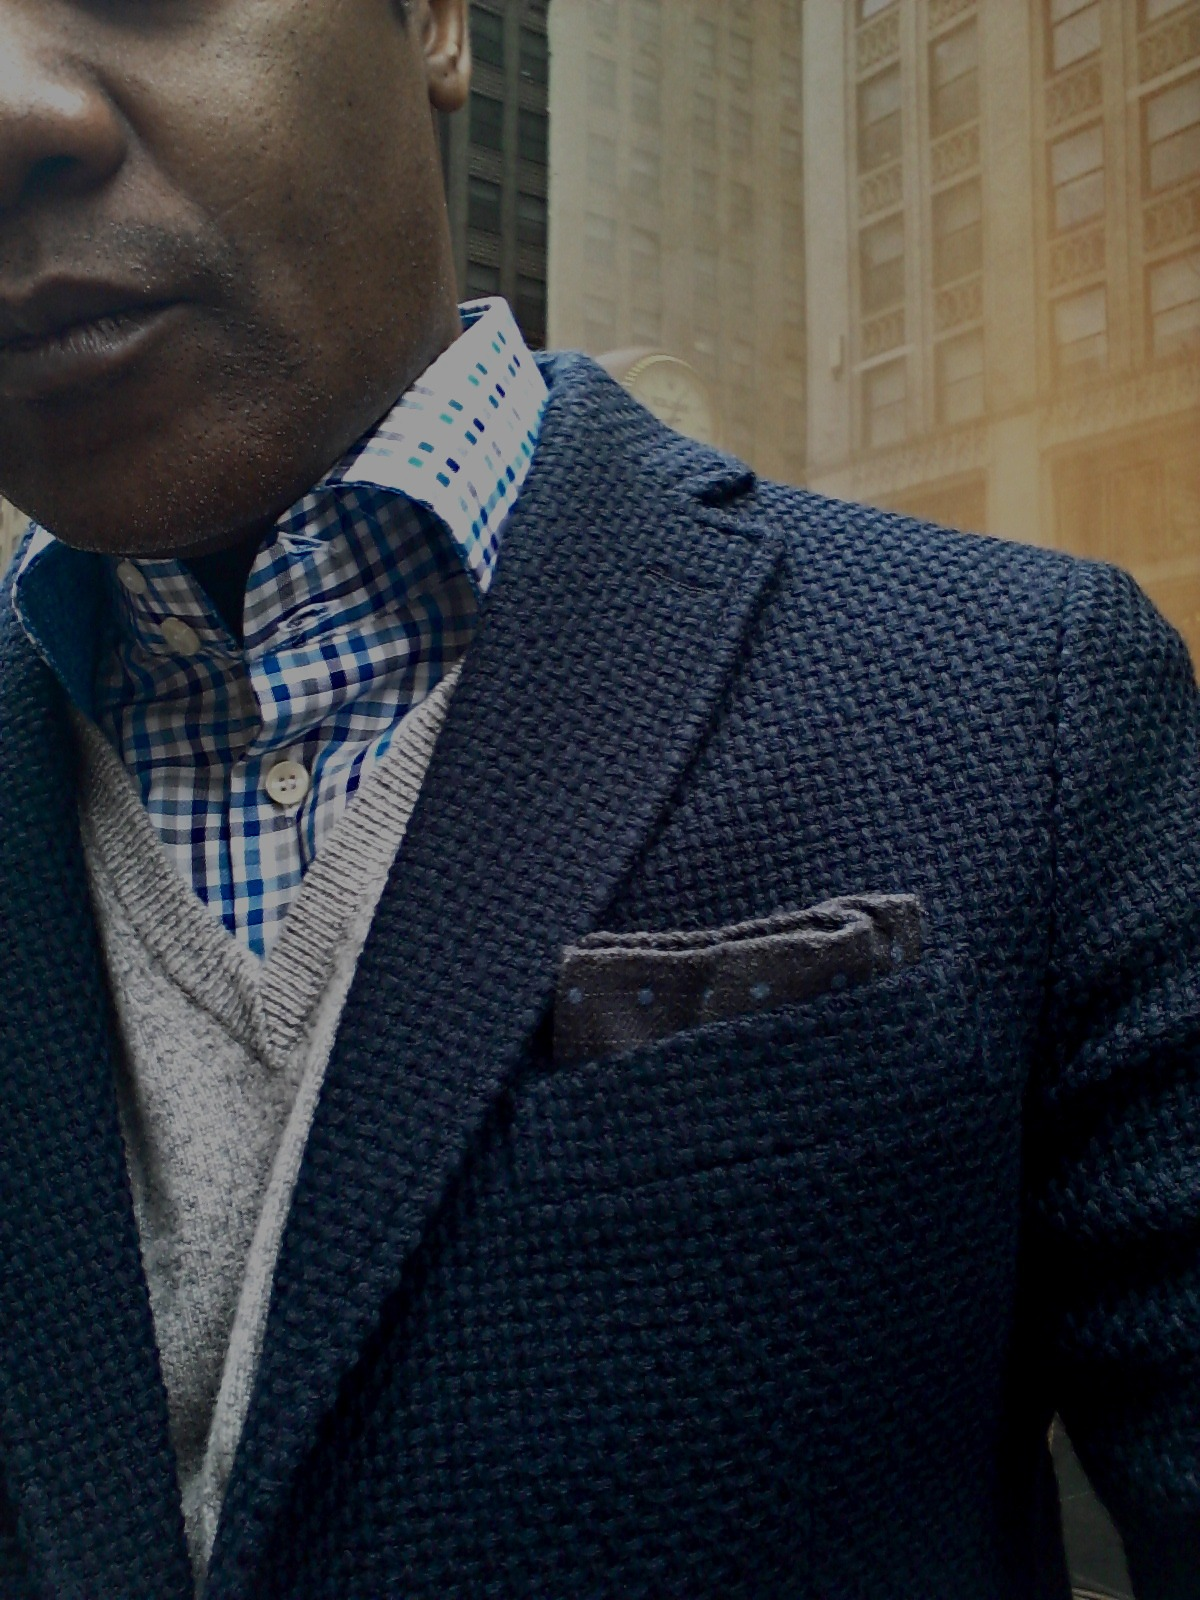 awesome fabric on this blazer!